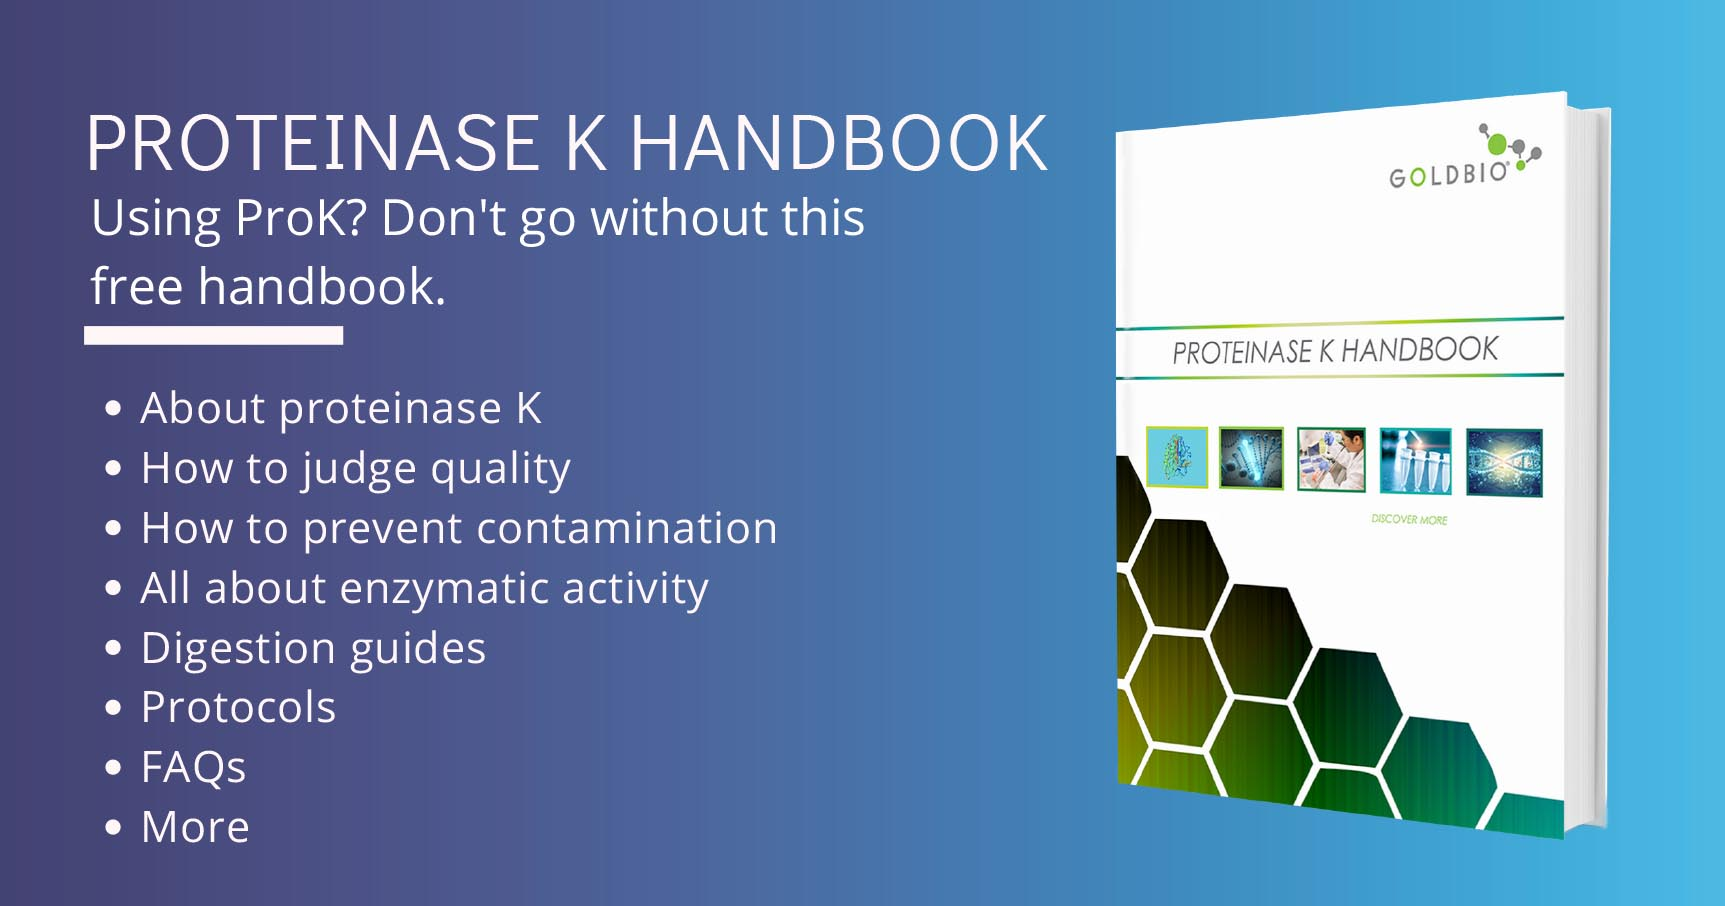 Proteinase K Handbook - ProK handbook with digestion guides, enzymatic activity contamination prevention and more